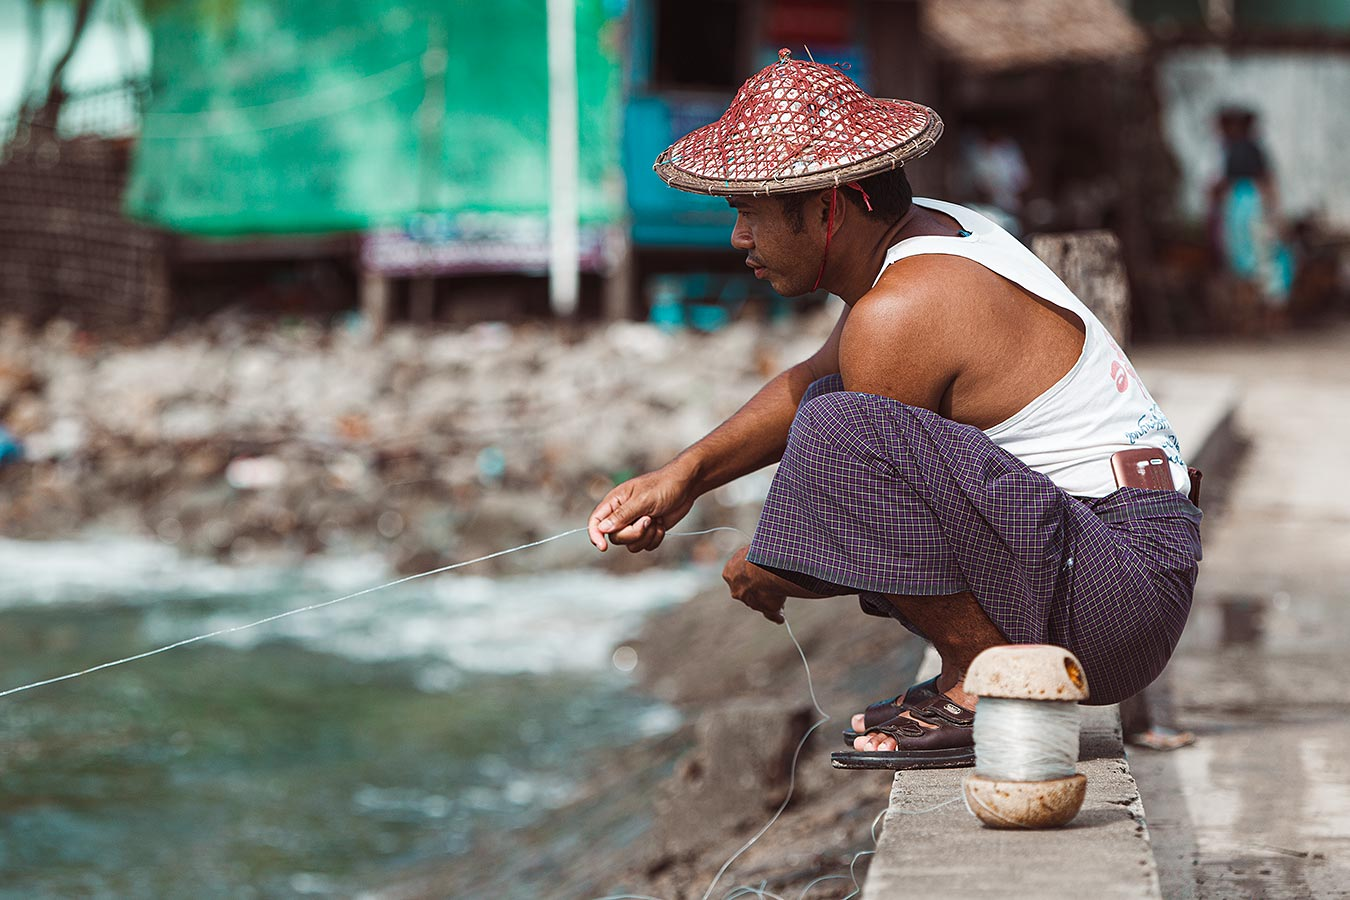 A man fishes for baracuda from a dock in southeast Asia